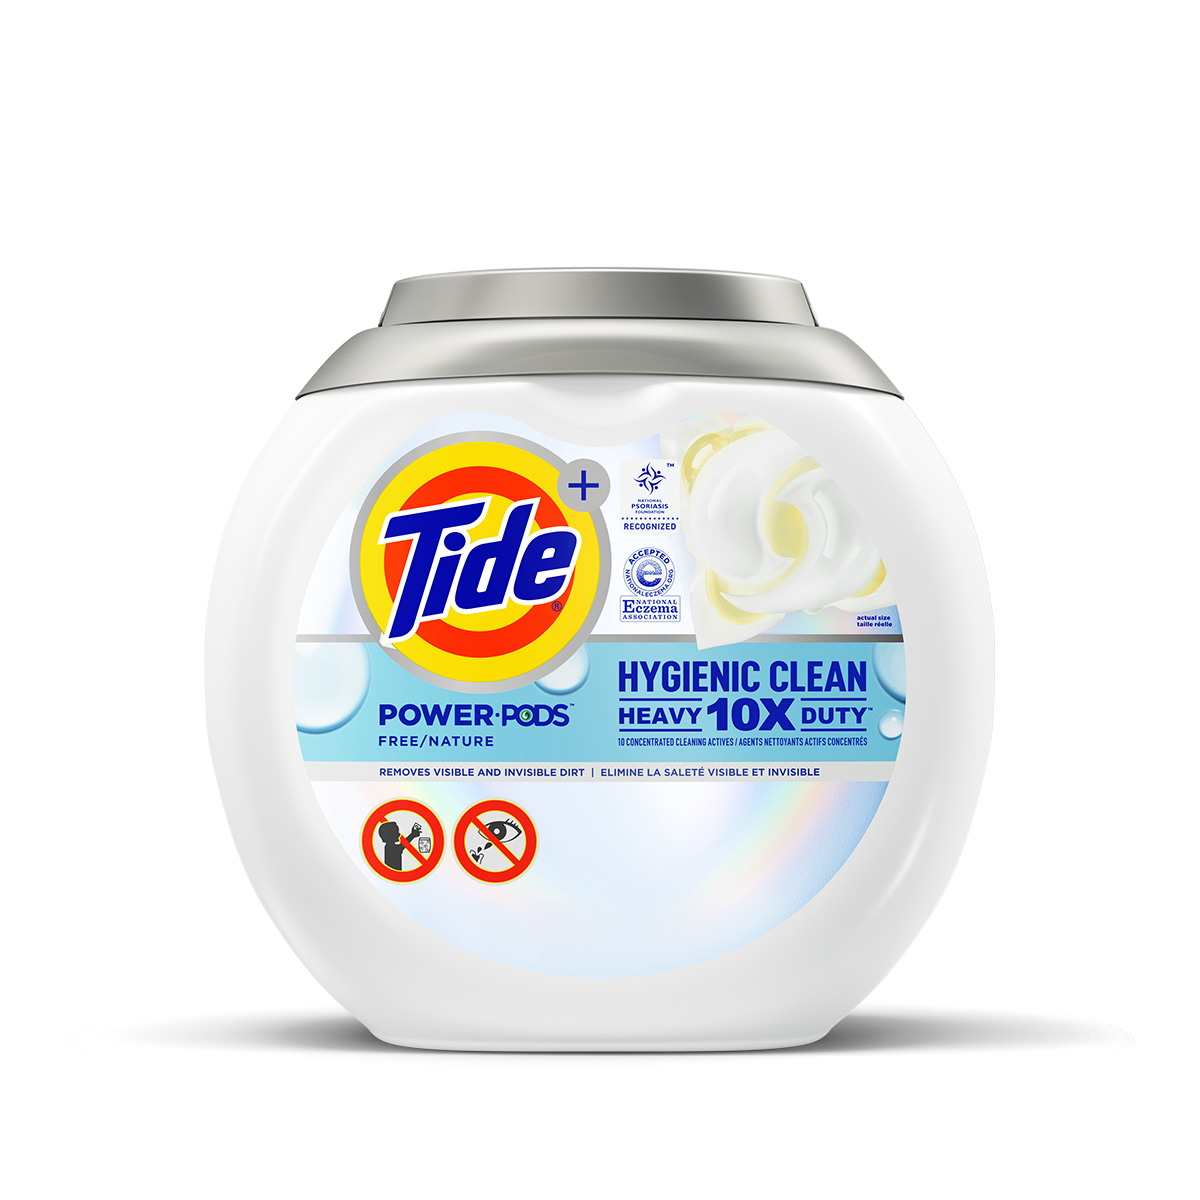 Tide Hygienic Clean Heavy Duty 10X Free Power PODS®